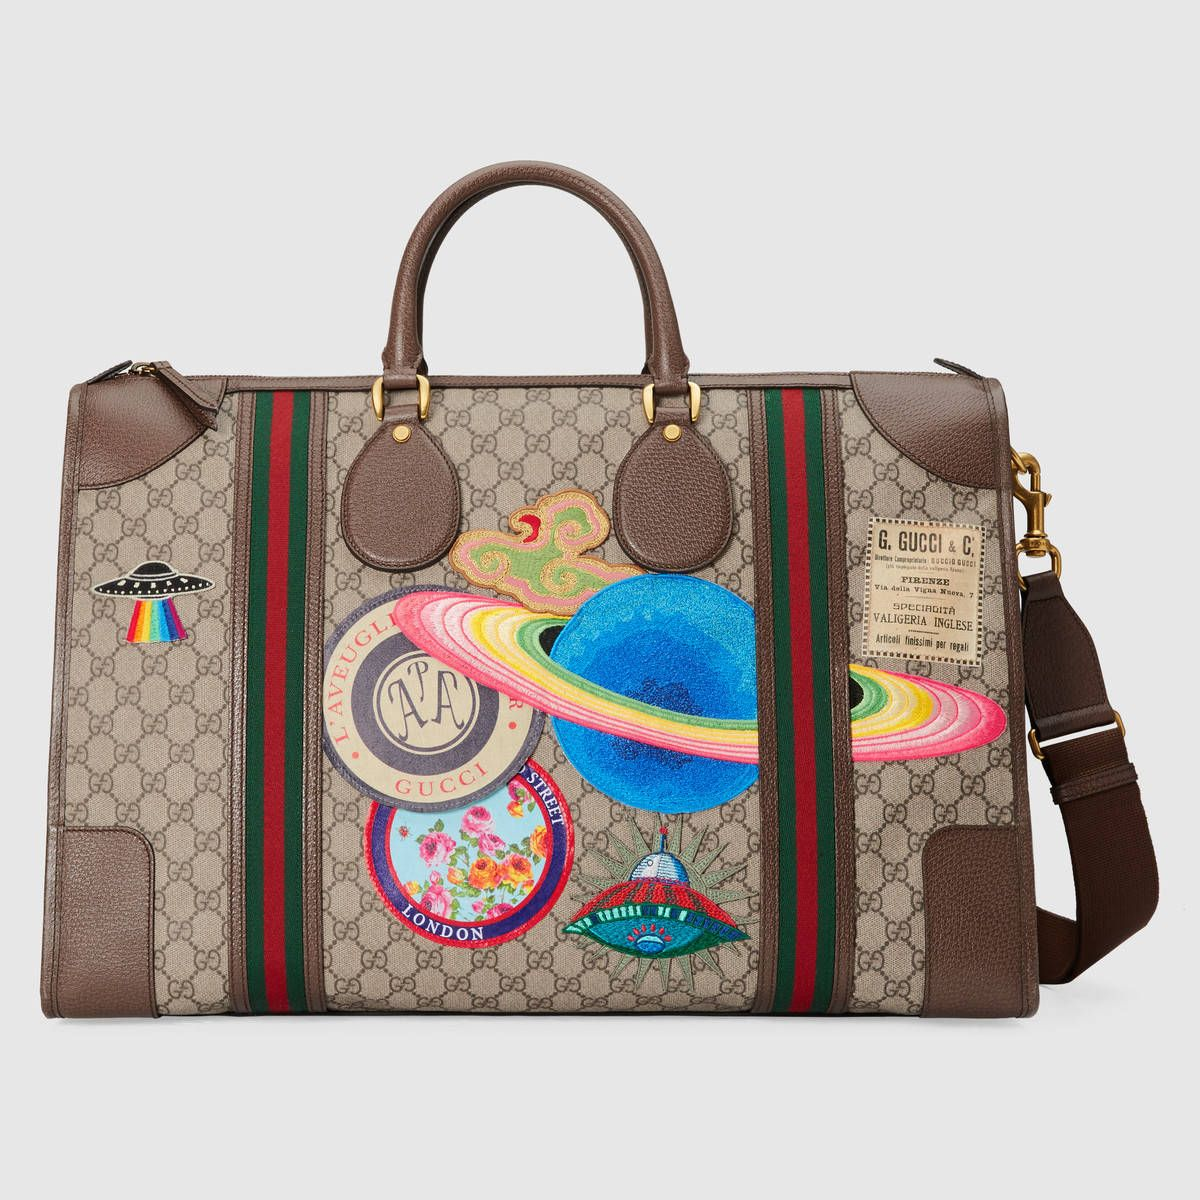 8836b4150 Gucci Courrier soft GG Supreme duffle bag | bag in 2019 | Leather ...